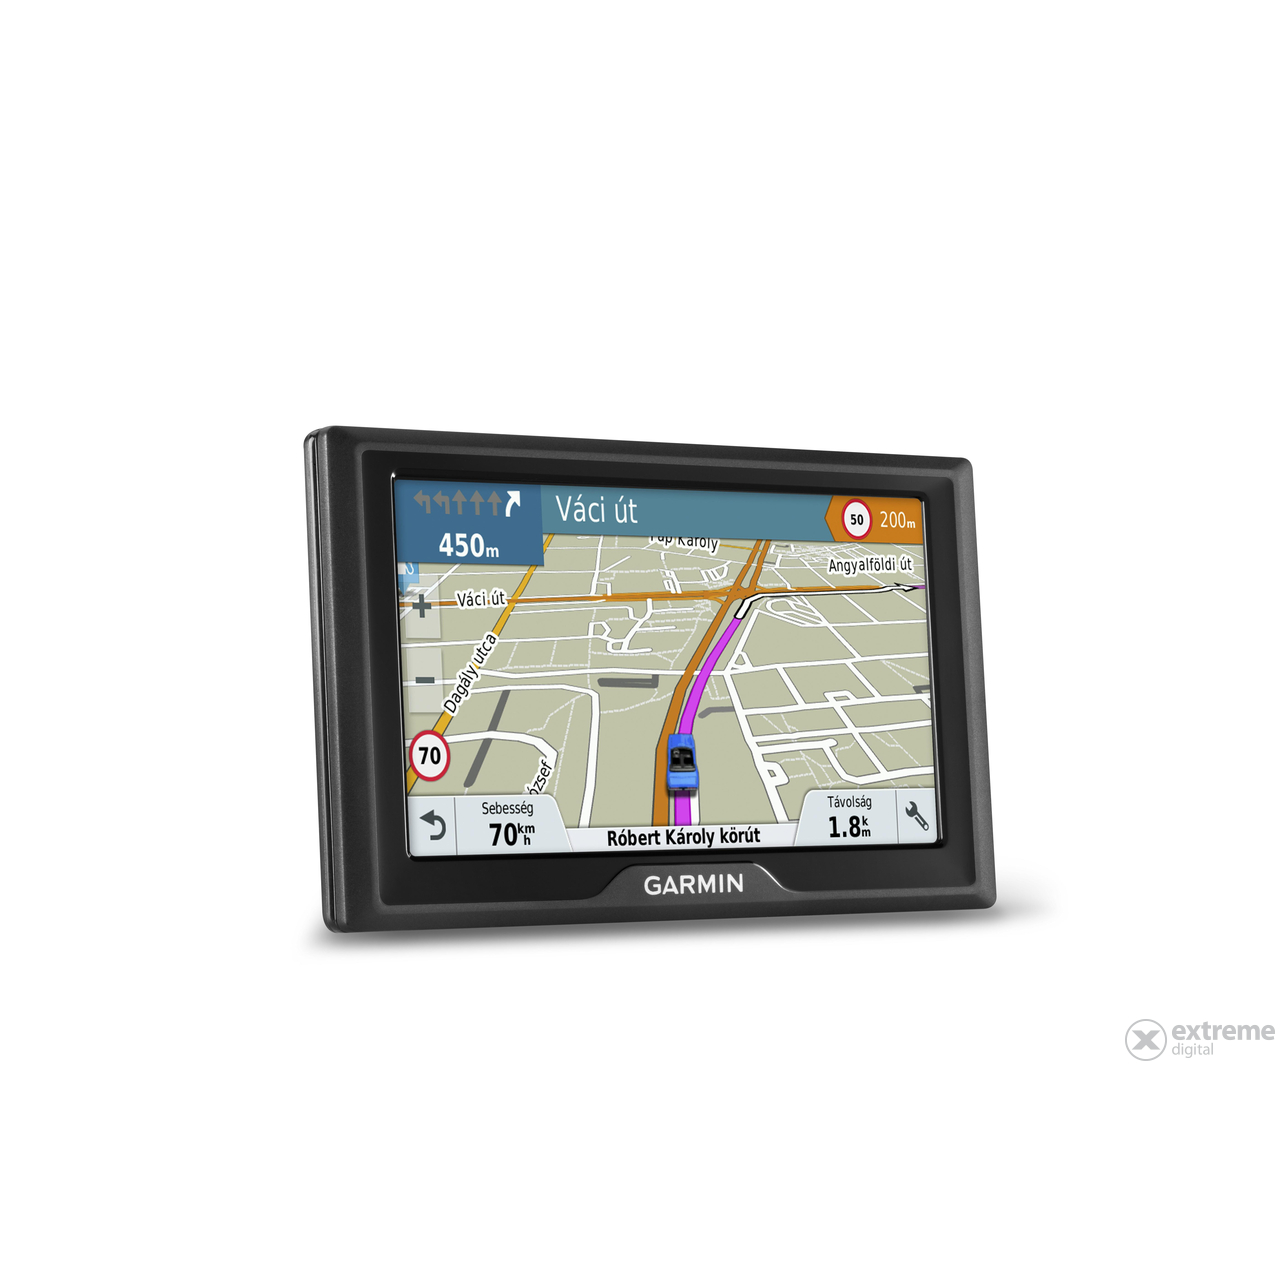 Garmin Drive 50 LMT (Lifetime Maps + TMC) 5